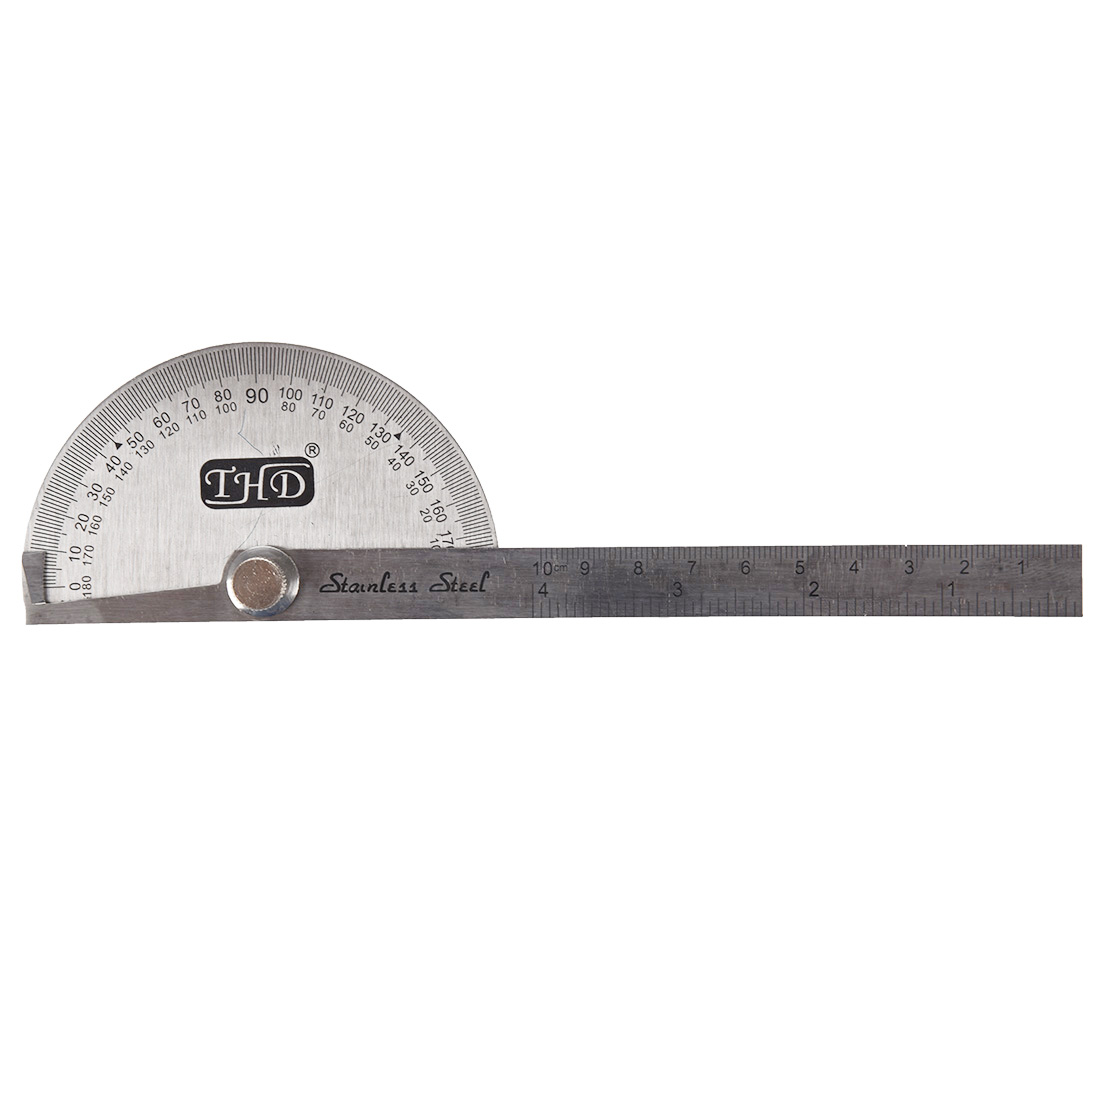 2 PCS Of Stainless Steel Protractor W 10 Cm Measurement Ruler